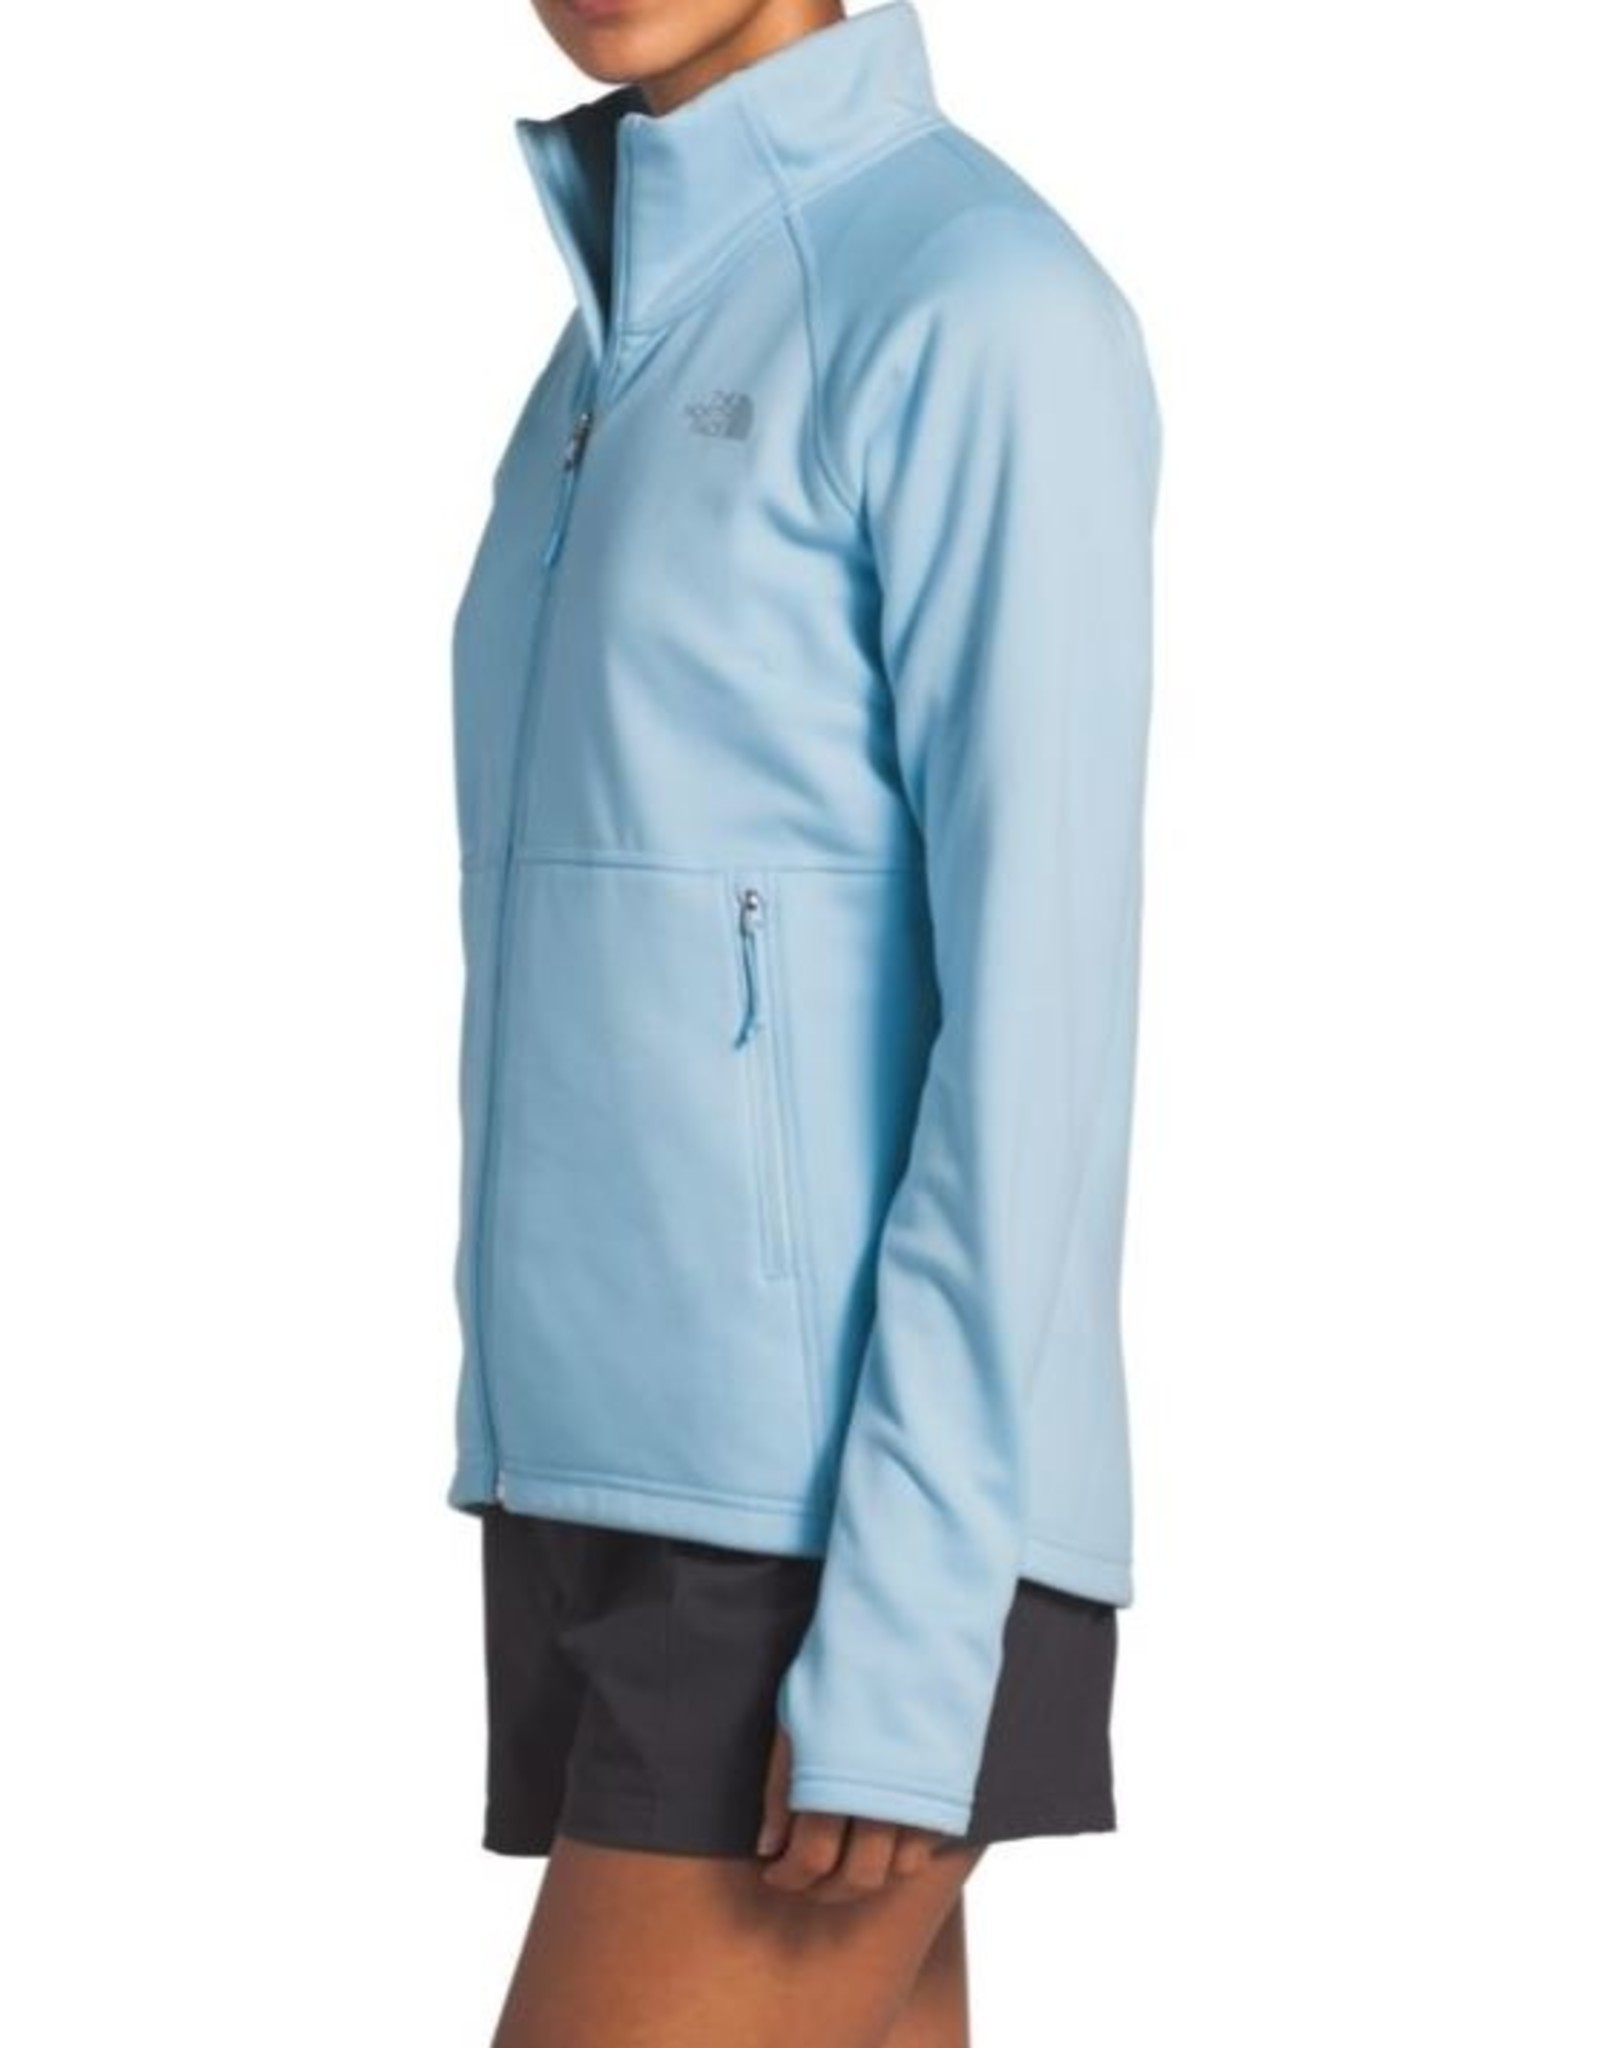 The North Face Women's Canyonlands Jacket - ps20